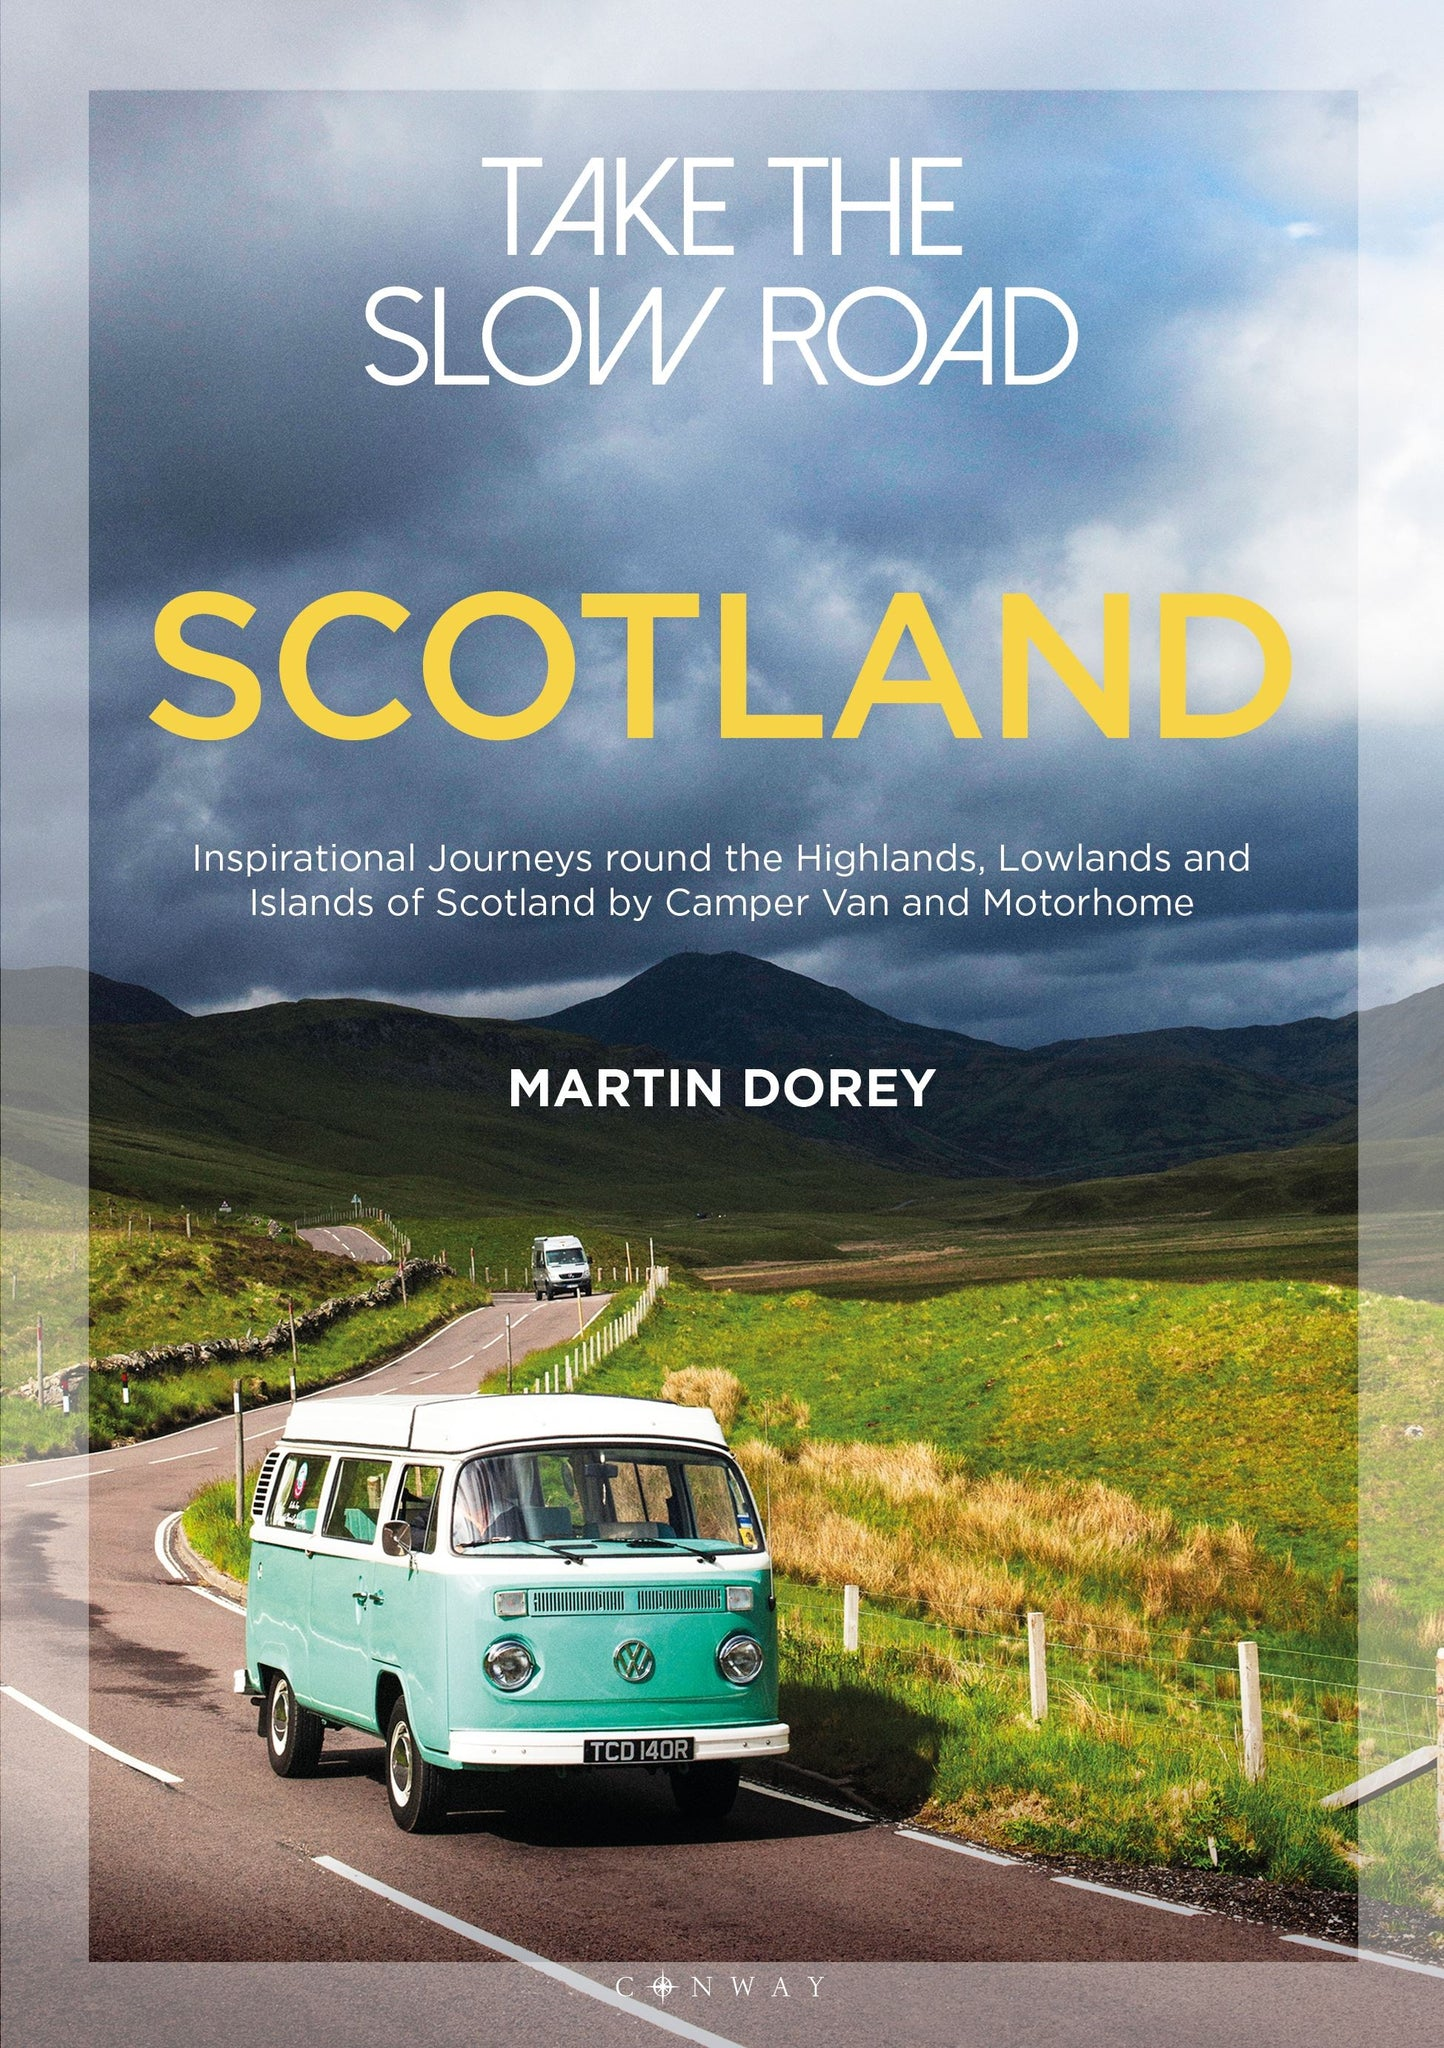 a beautifully illustrated guide to exploring scotland by tourer